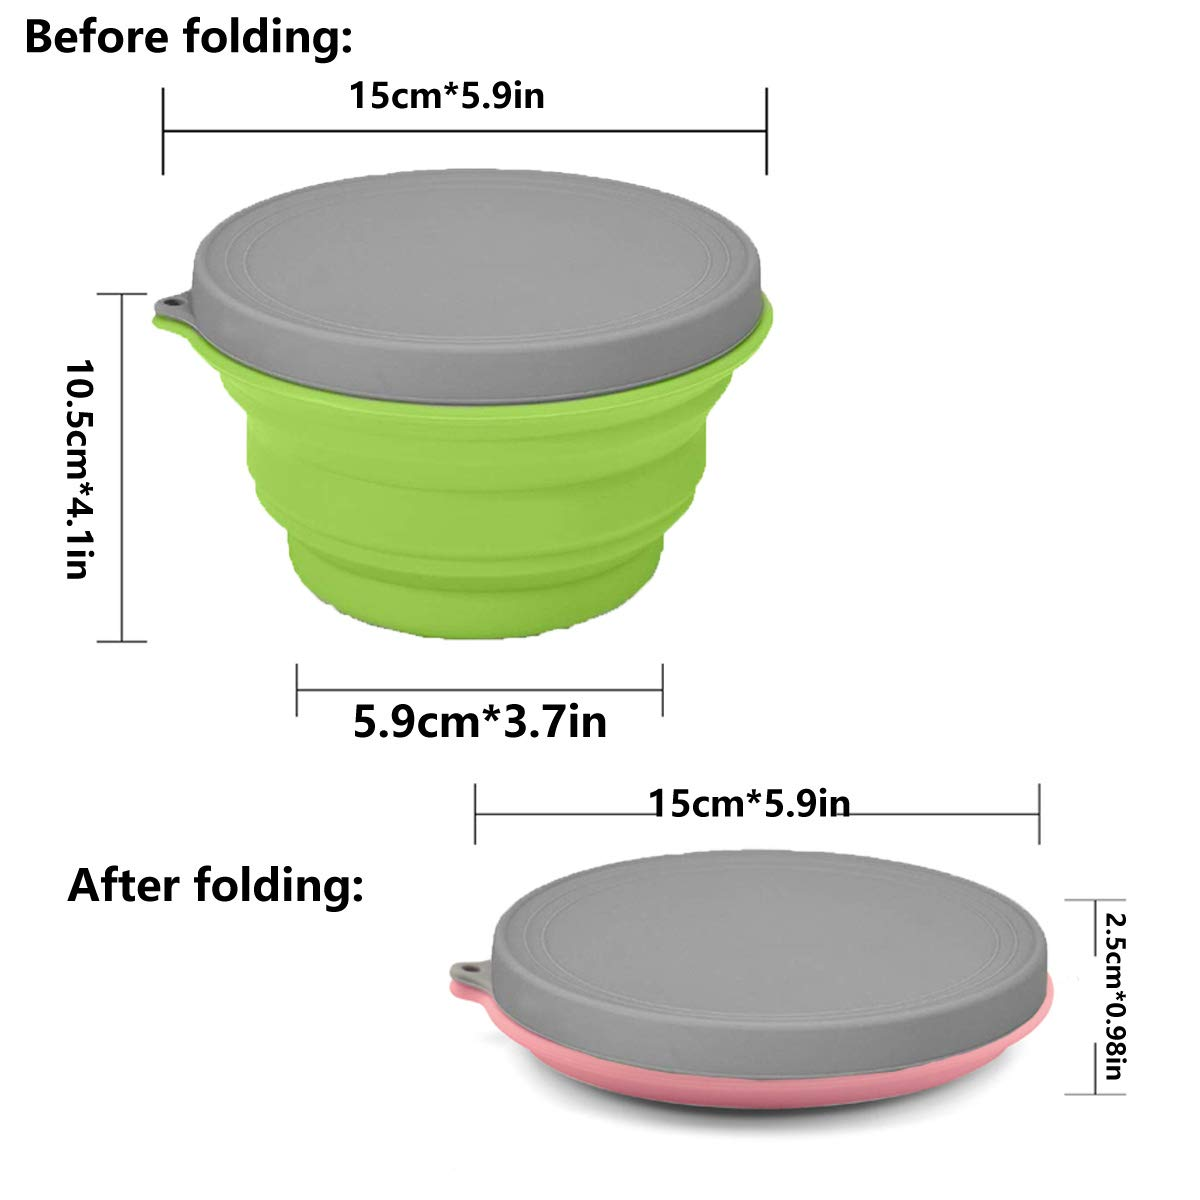 Portable Travel Bowl Green Suitable for Picnic cjixnji Silicone Collapsible Bowl Safe and Sanitary Food-Grade Camping Bowl with Lids Expandable Portable Bowl Outdoor Camping and Hiking